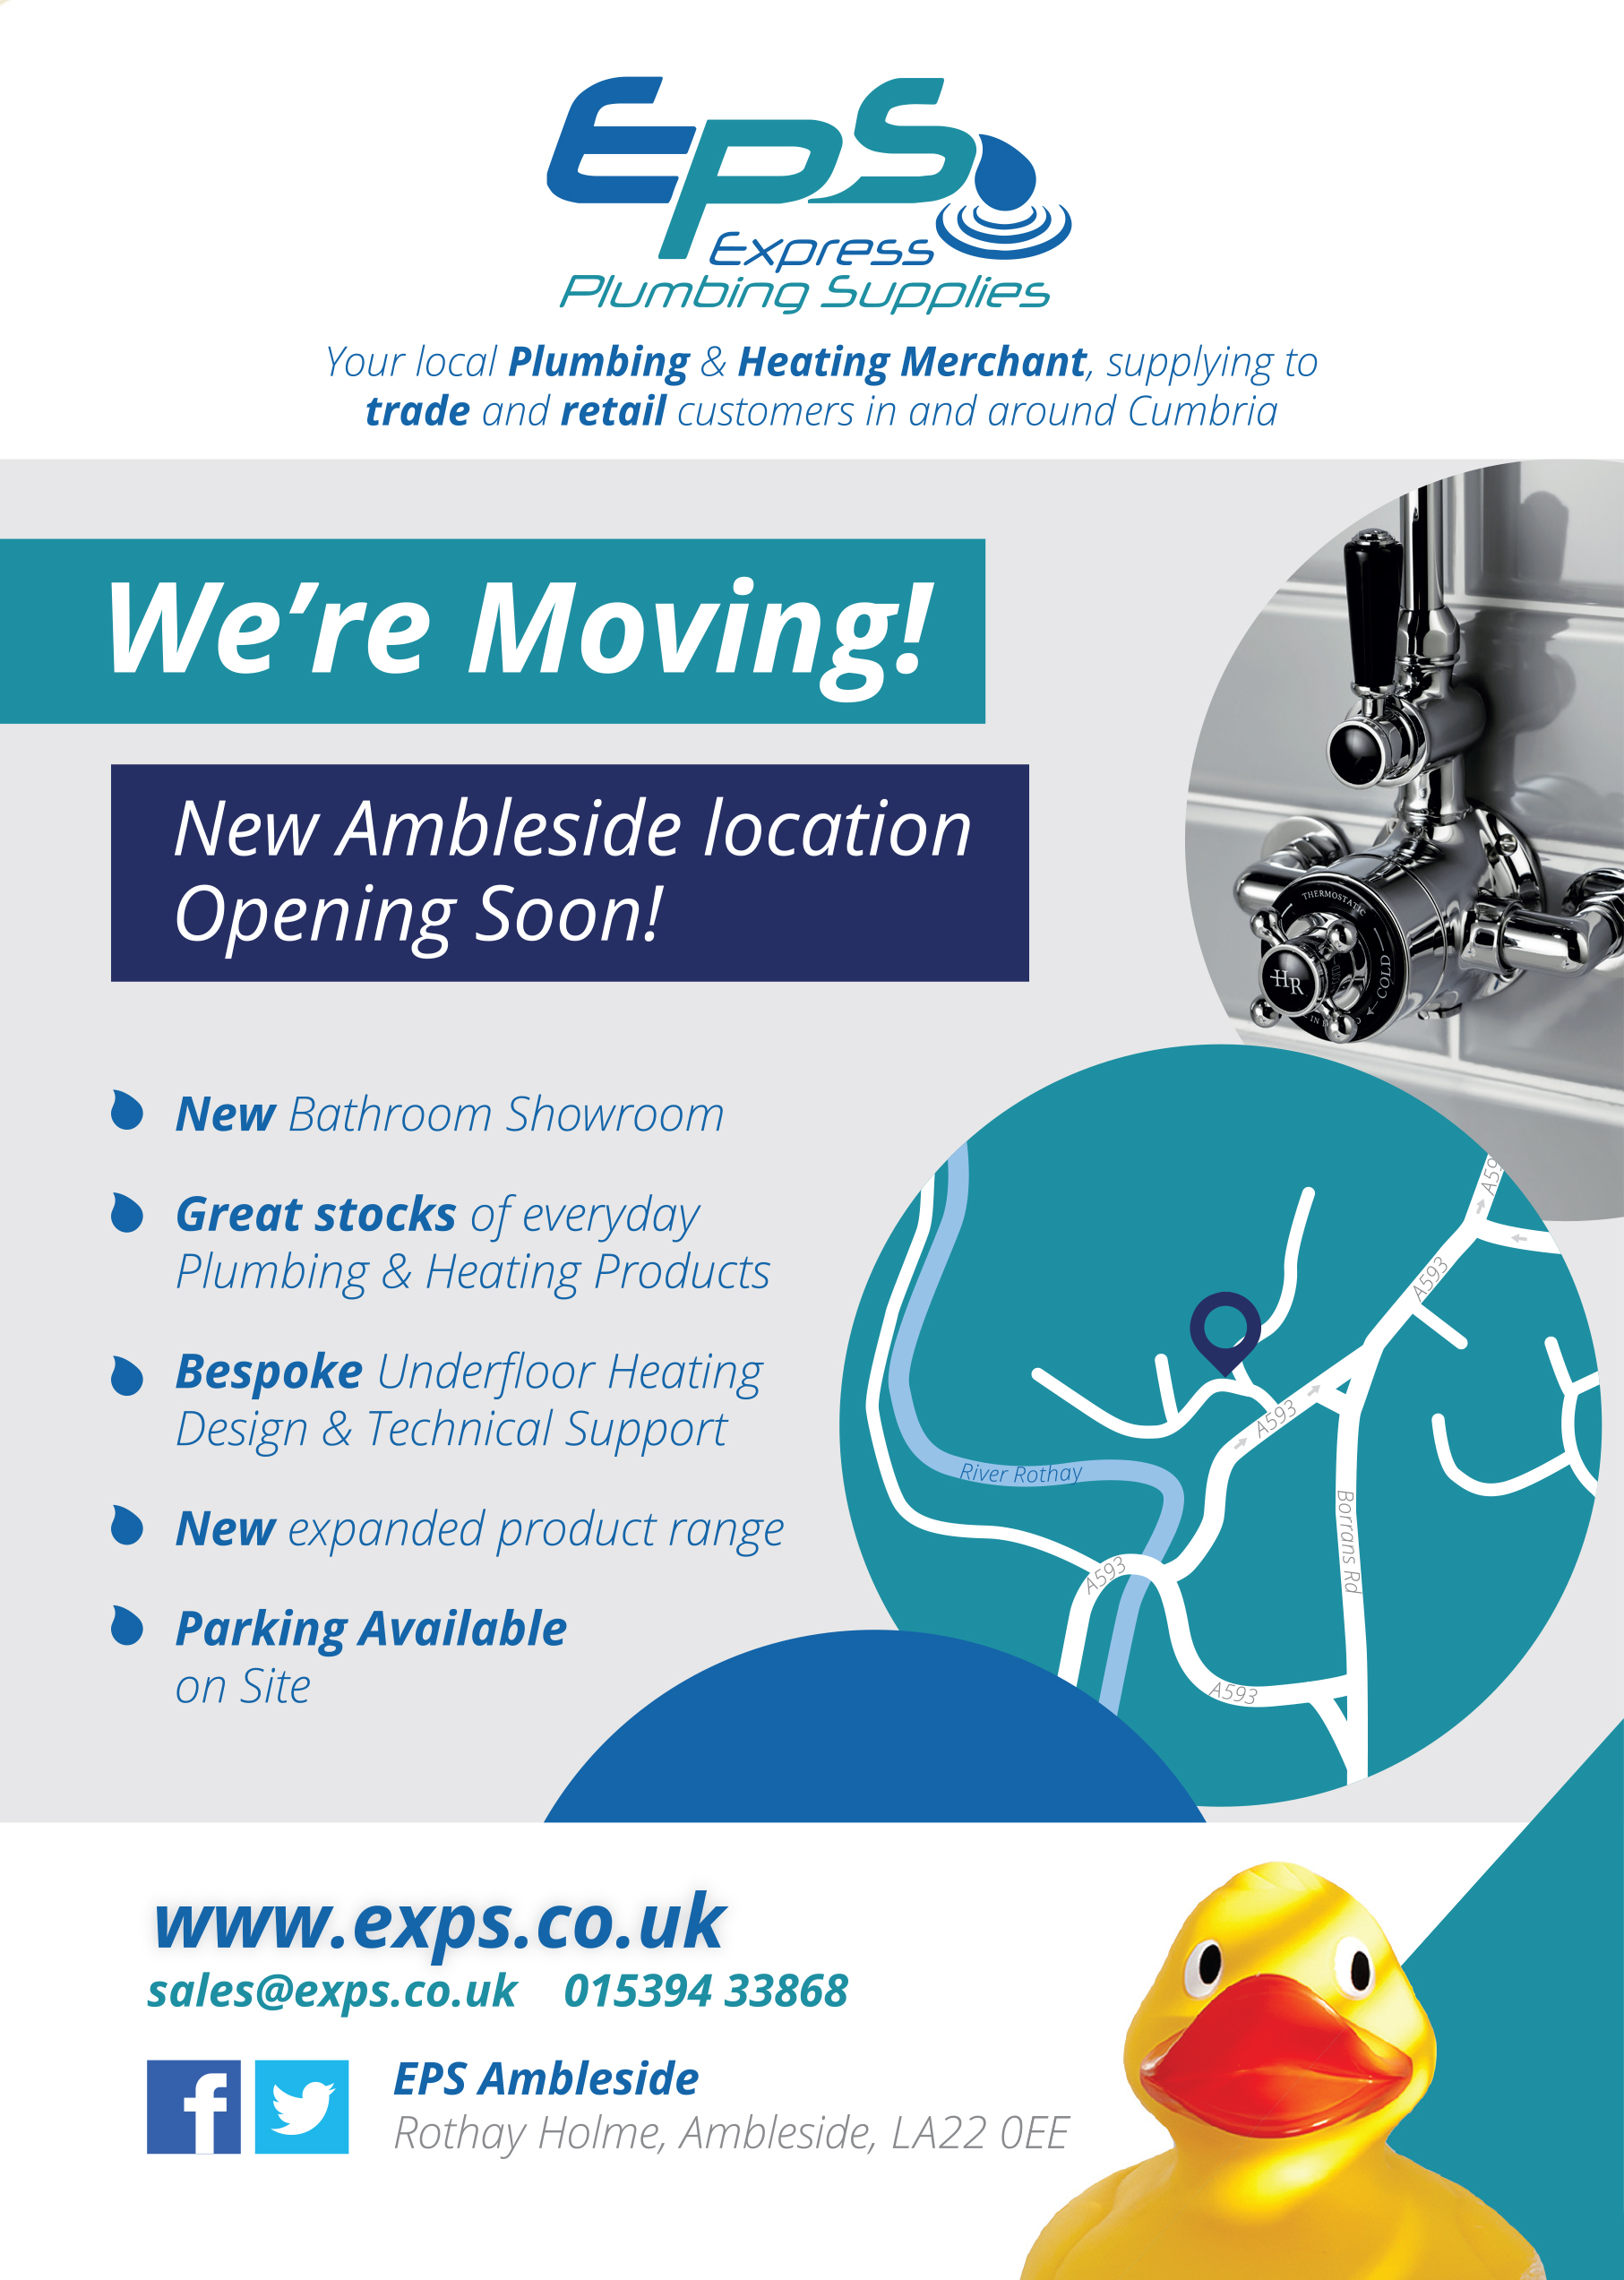 New Ambleside Location Opening Soon!